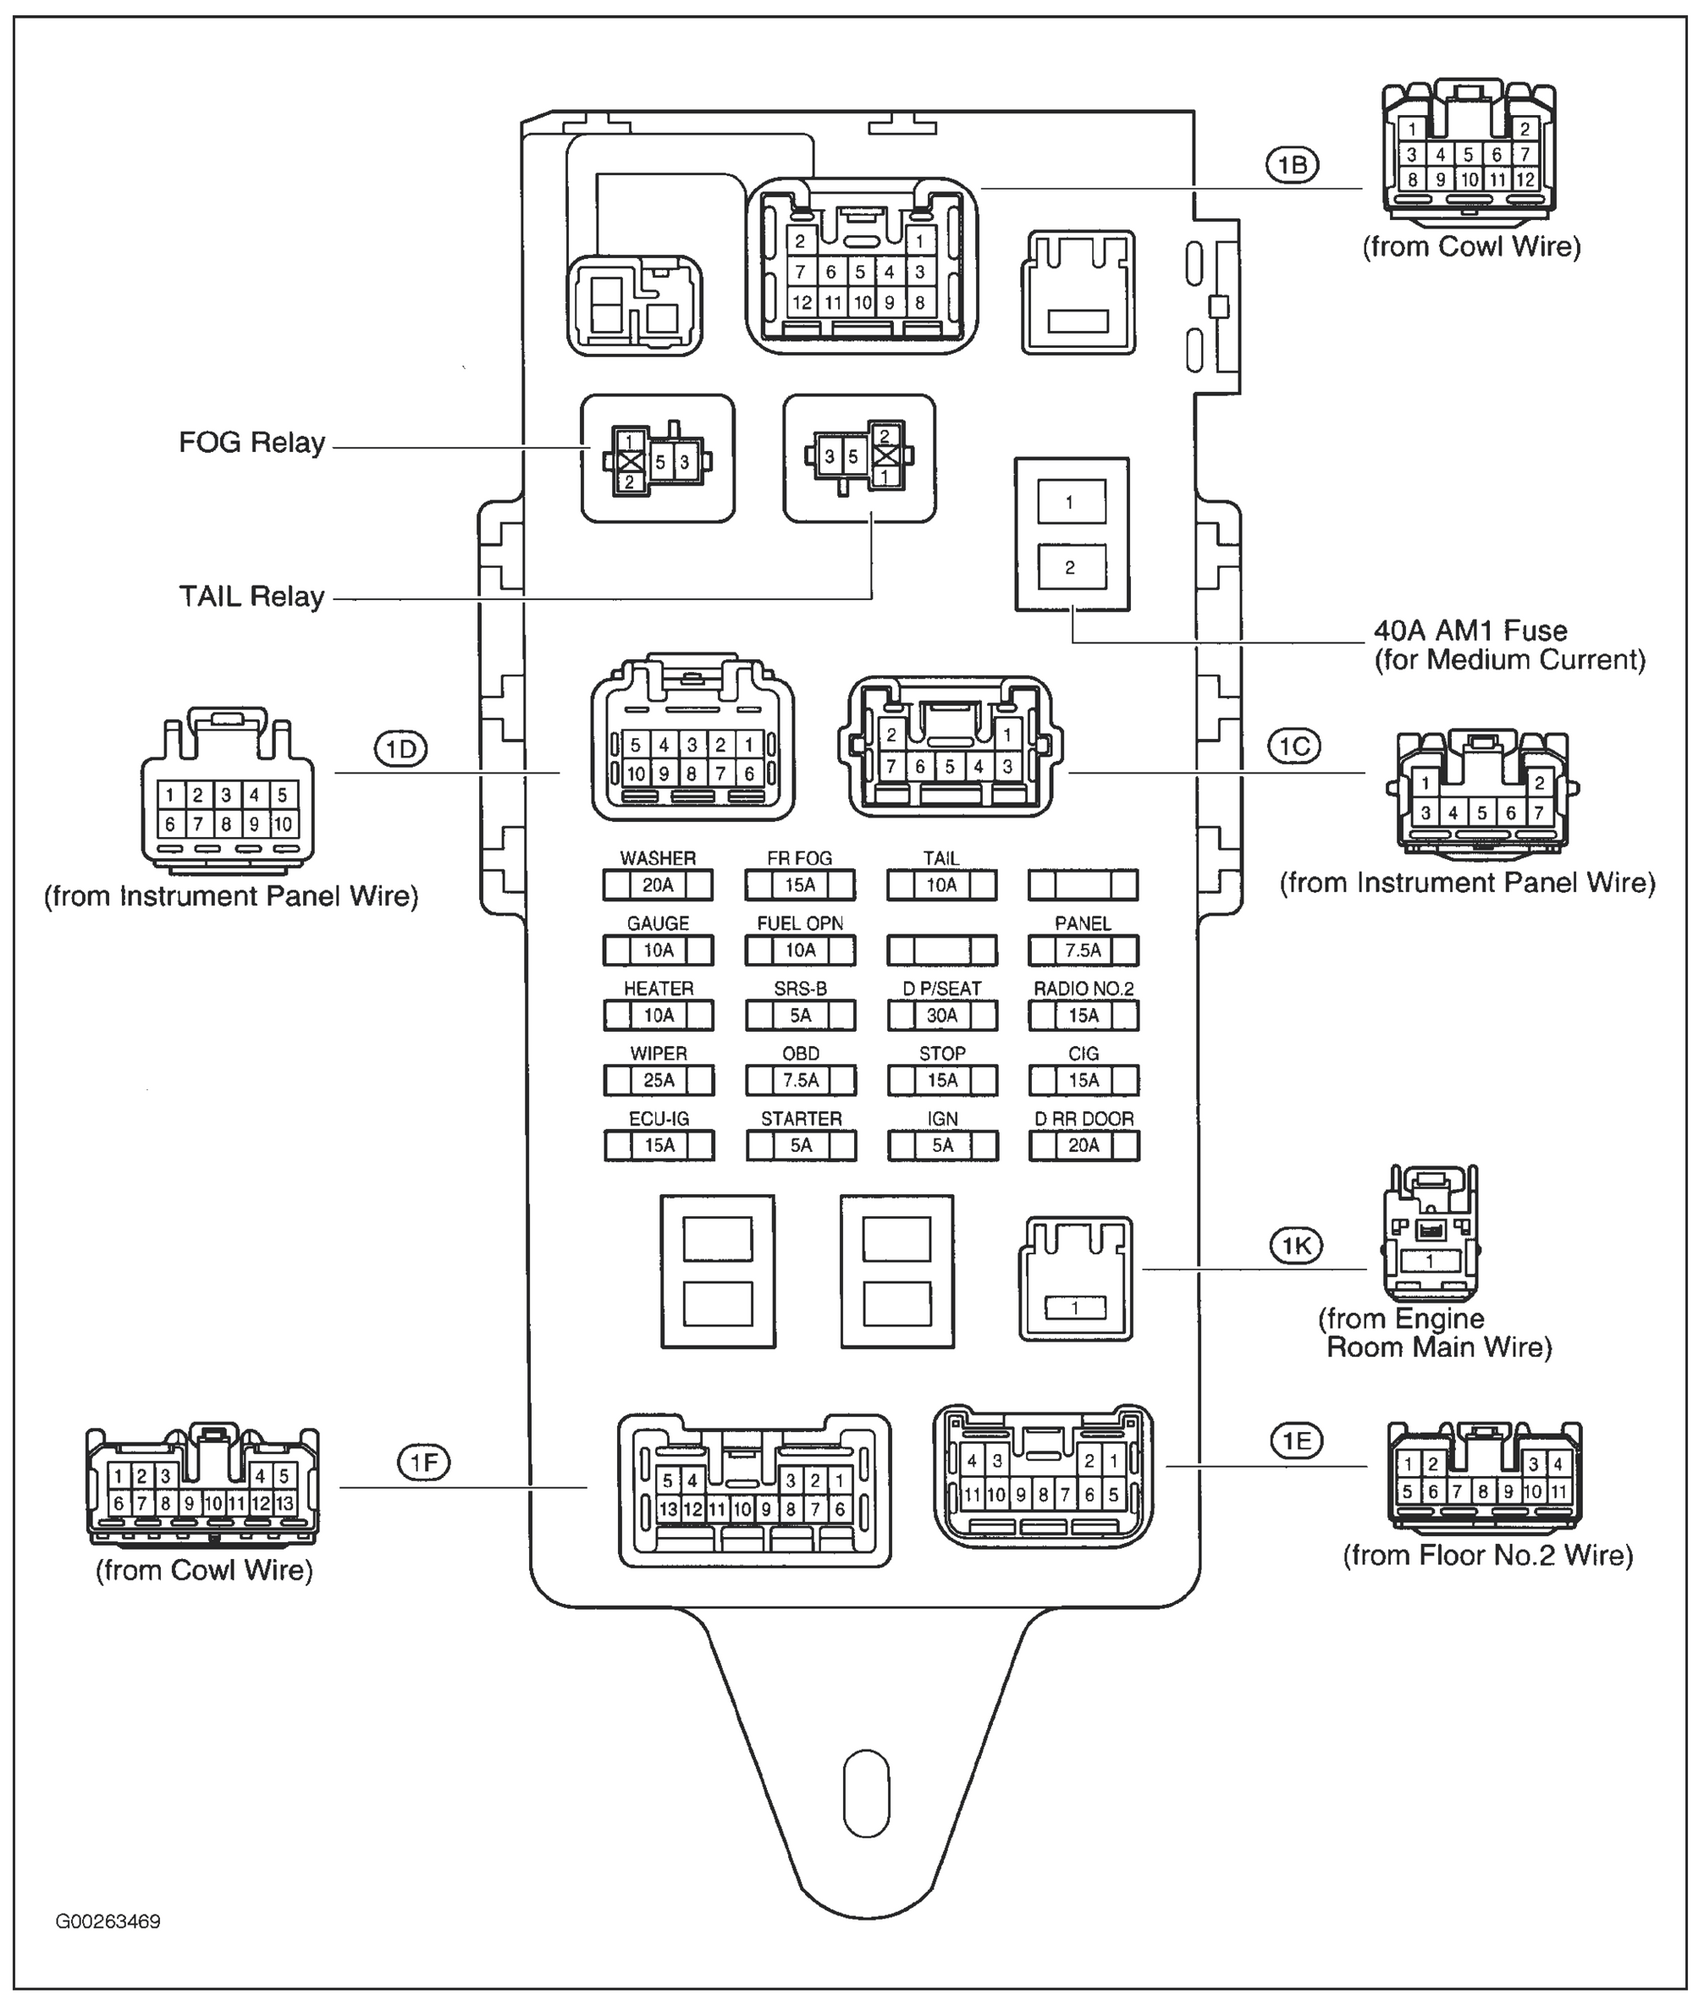 Lexus Gs300 Fuse Box Diagram Archive Of Automotive Wiring Mitsubishi Image Details 2006 Experts U2022 Rh Evilcloud Co Uk 1998 1996 Gs 300